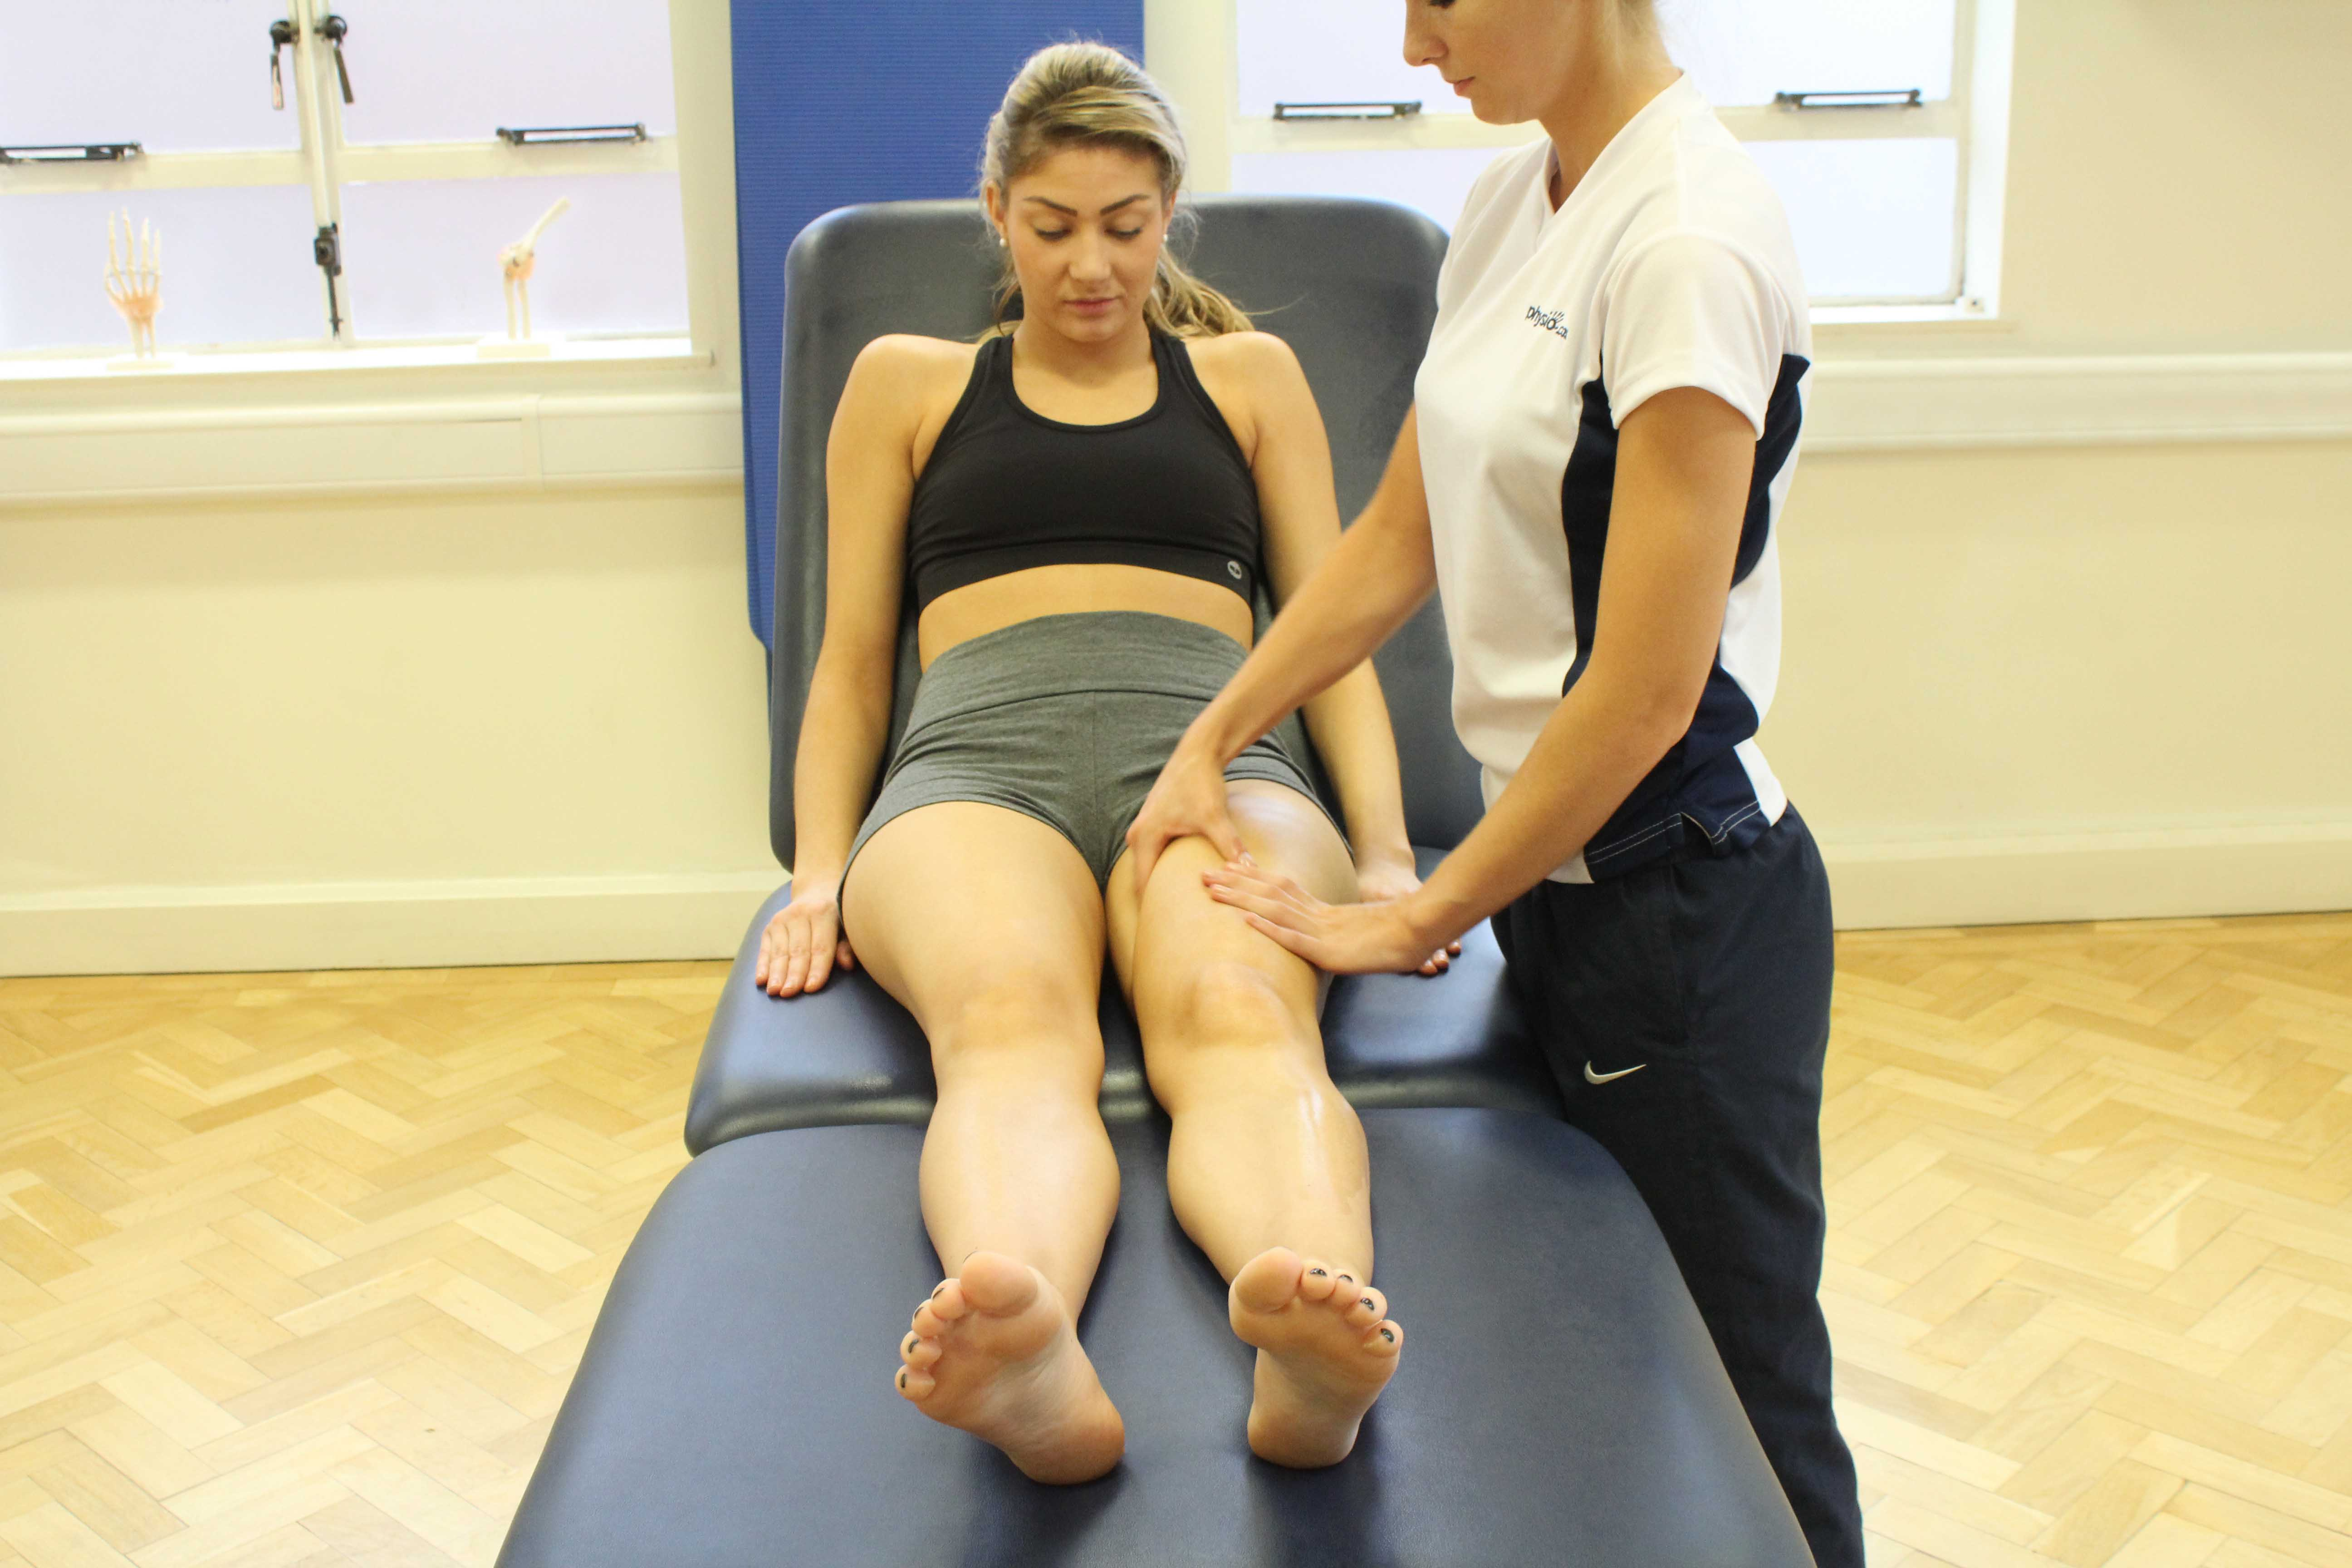 Soft tissue massage of the muscles and connective tissues around the hip and groin